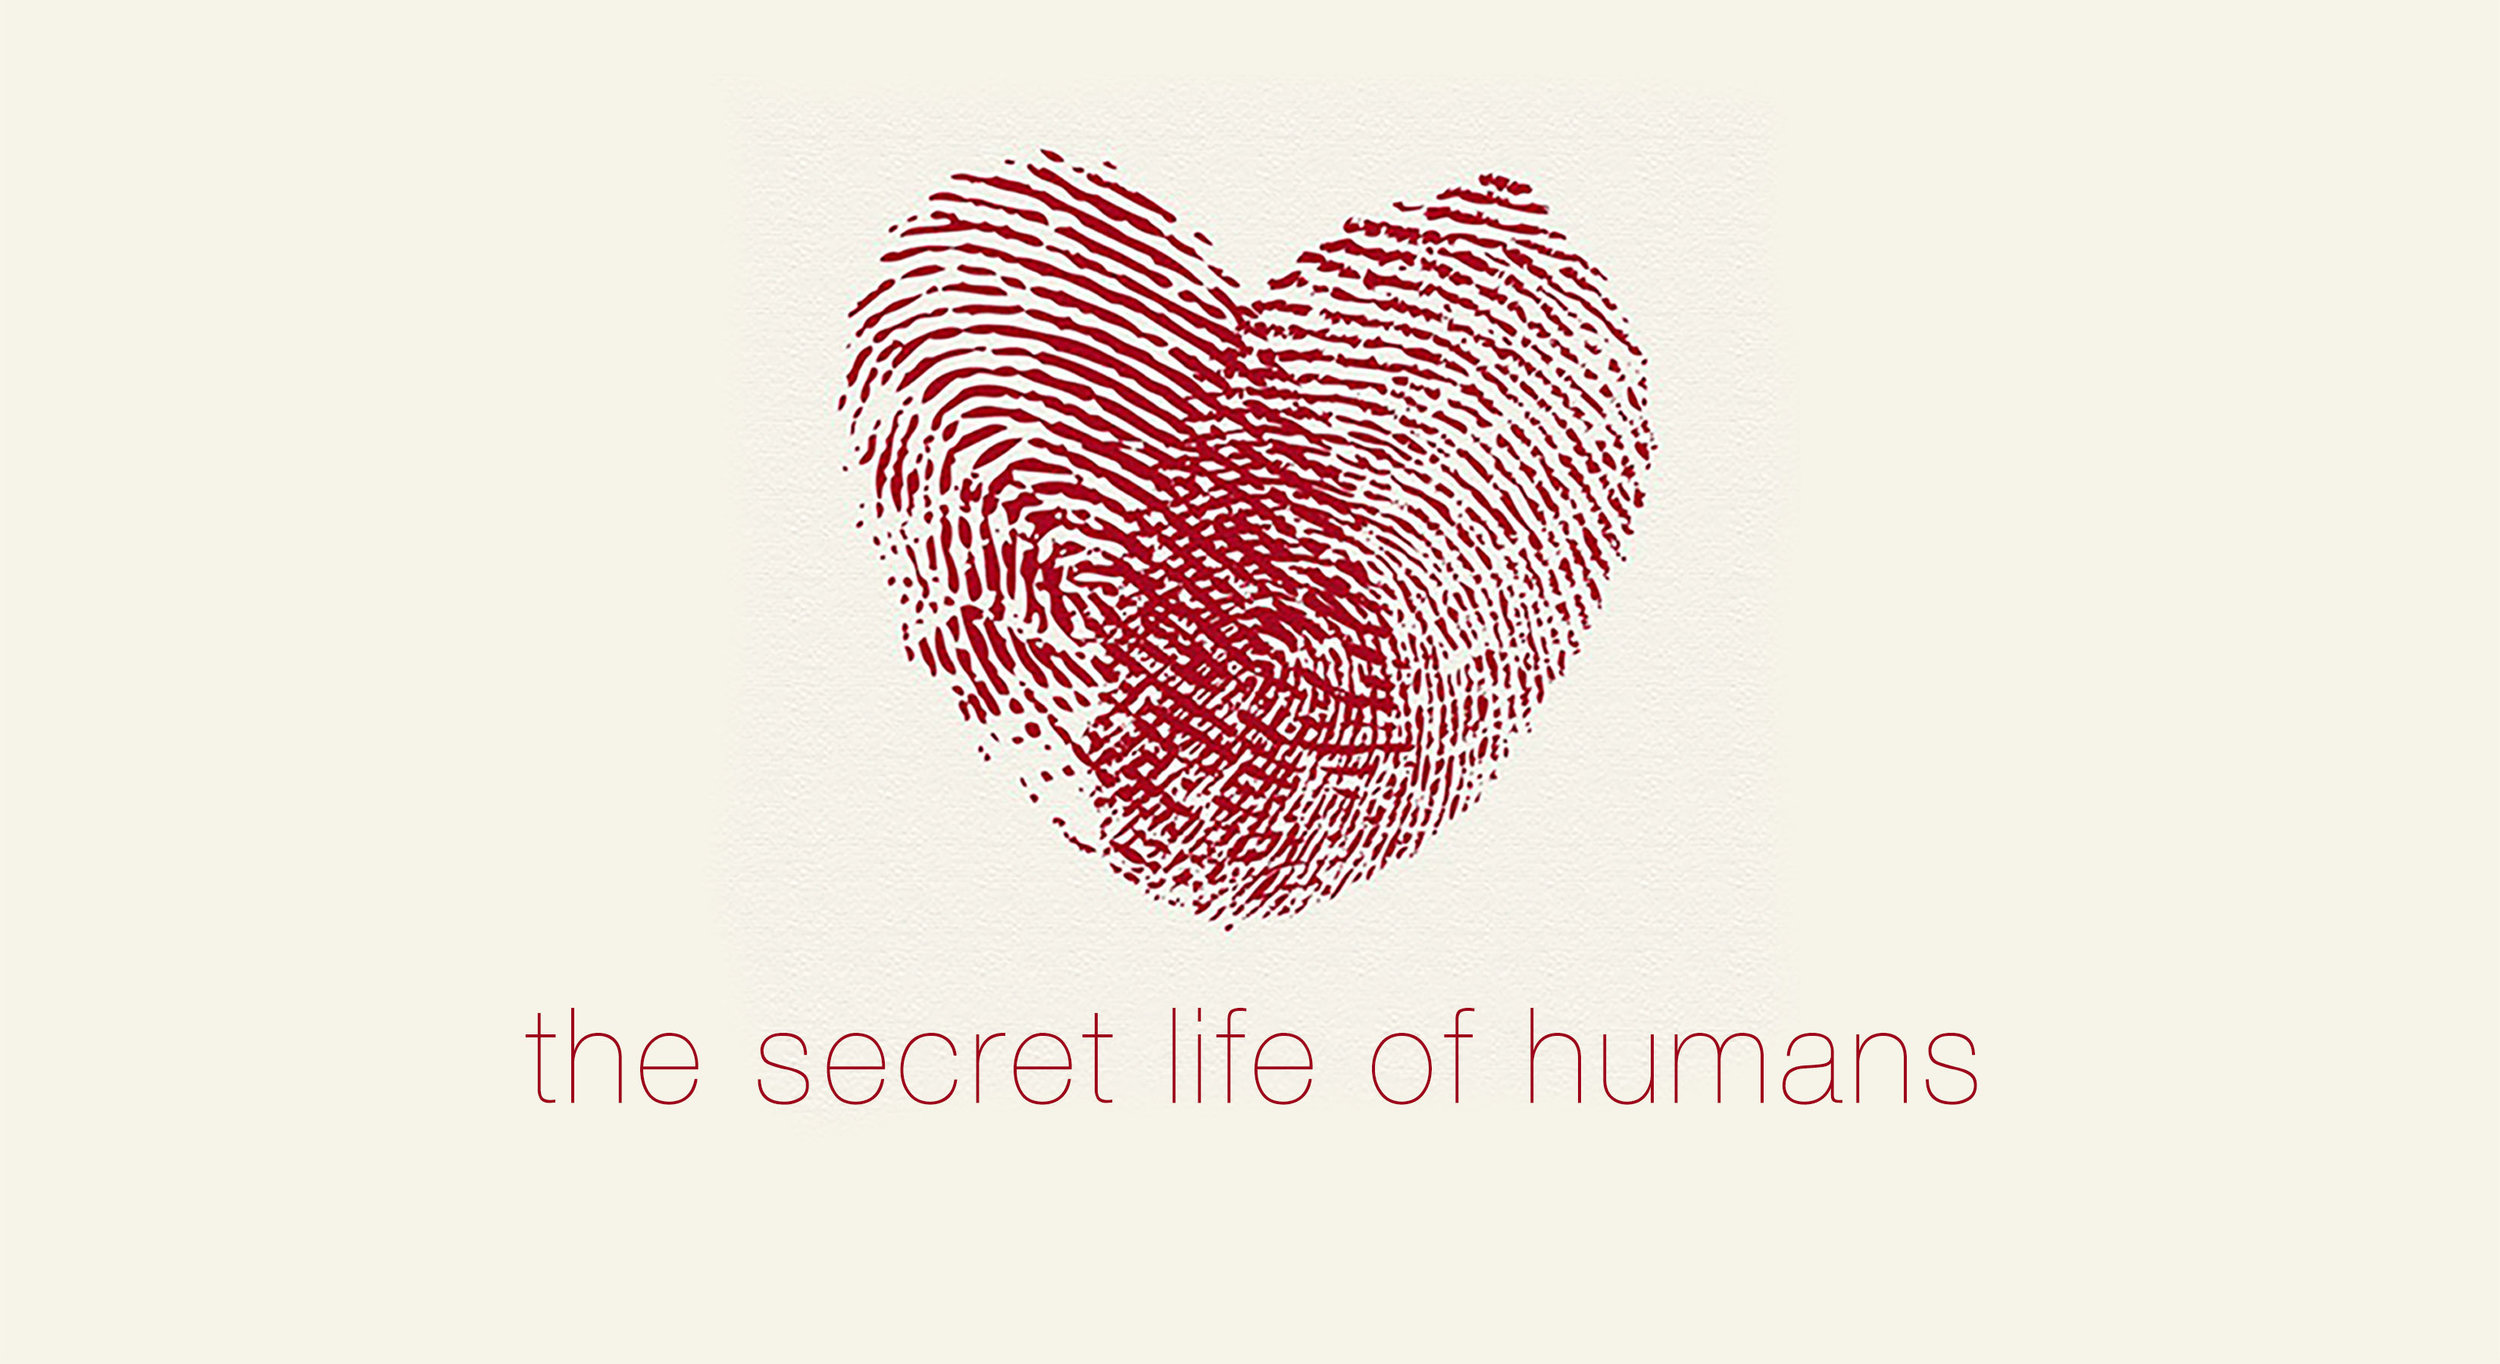 The Secret Life Of Humans - The Secret Life of Humans is an encyclopedia for sex and relationships in the modern era, presented in an attractive, fully-animated style. Each short episode explores a different area from the history of marriage, to the convoluted language of one-night stands, to the politics of polyamory. We mix interviews with scientists, historians, and other experts with deeply honest stories from regular people just trying to figure it all out.